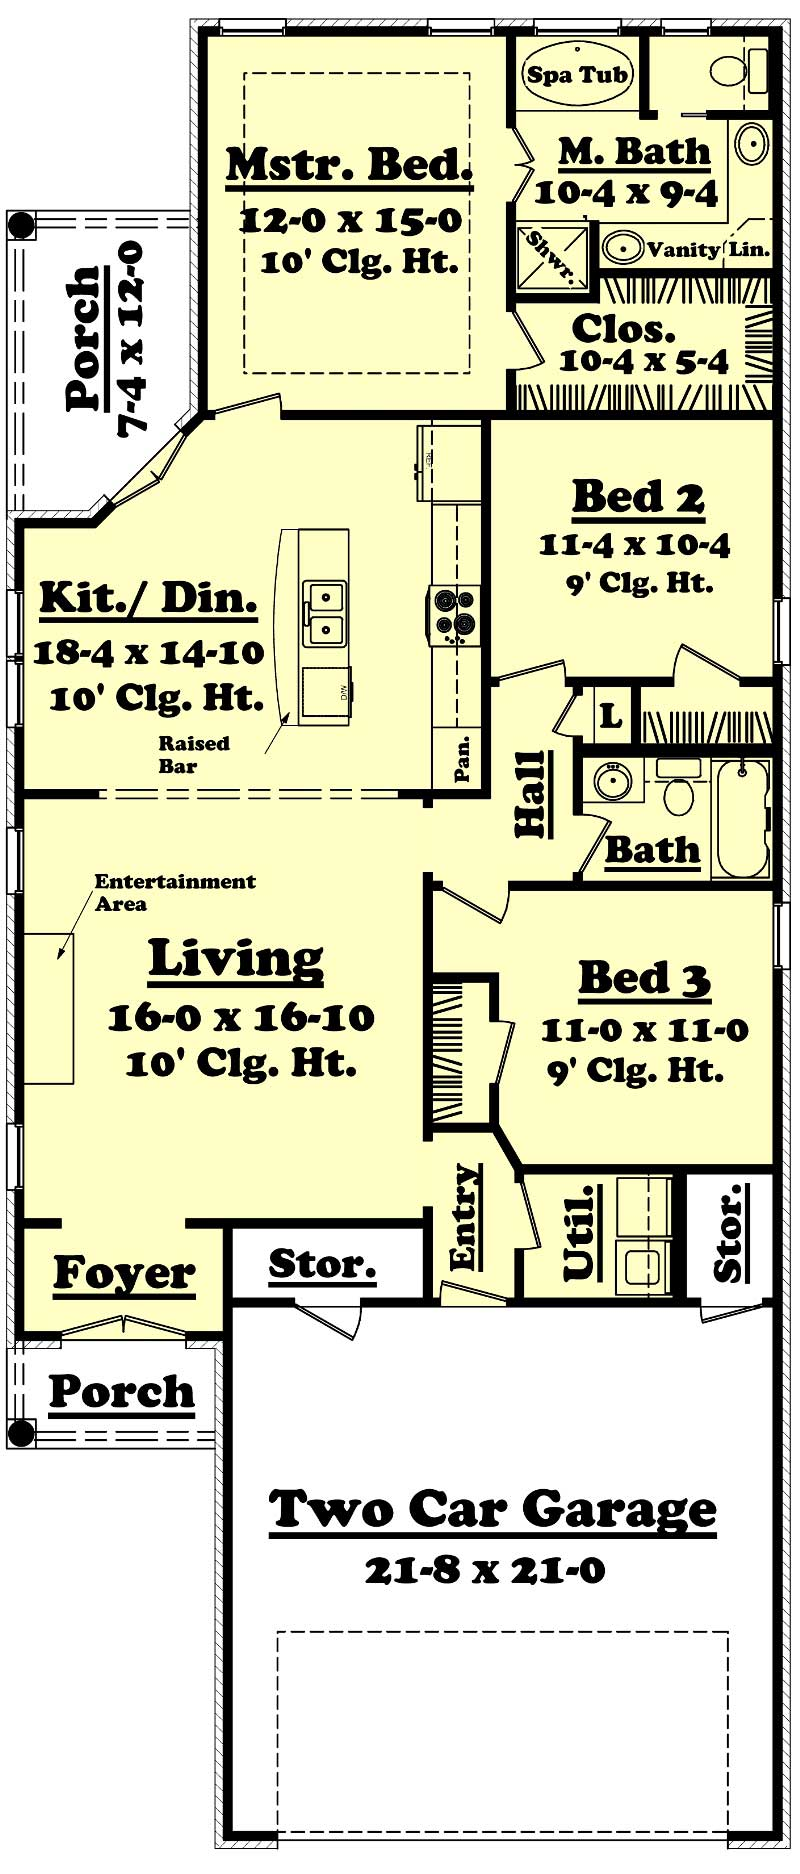 Small house plans home design 1400 5 Story floor plans with garage collection